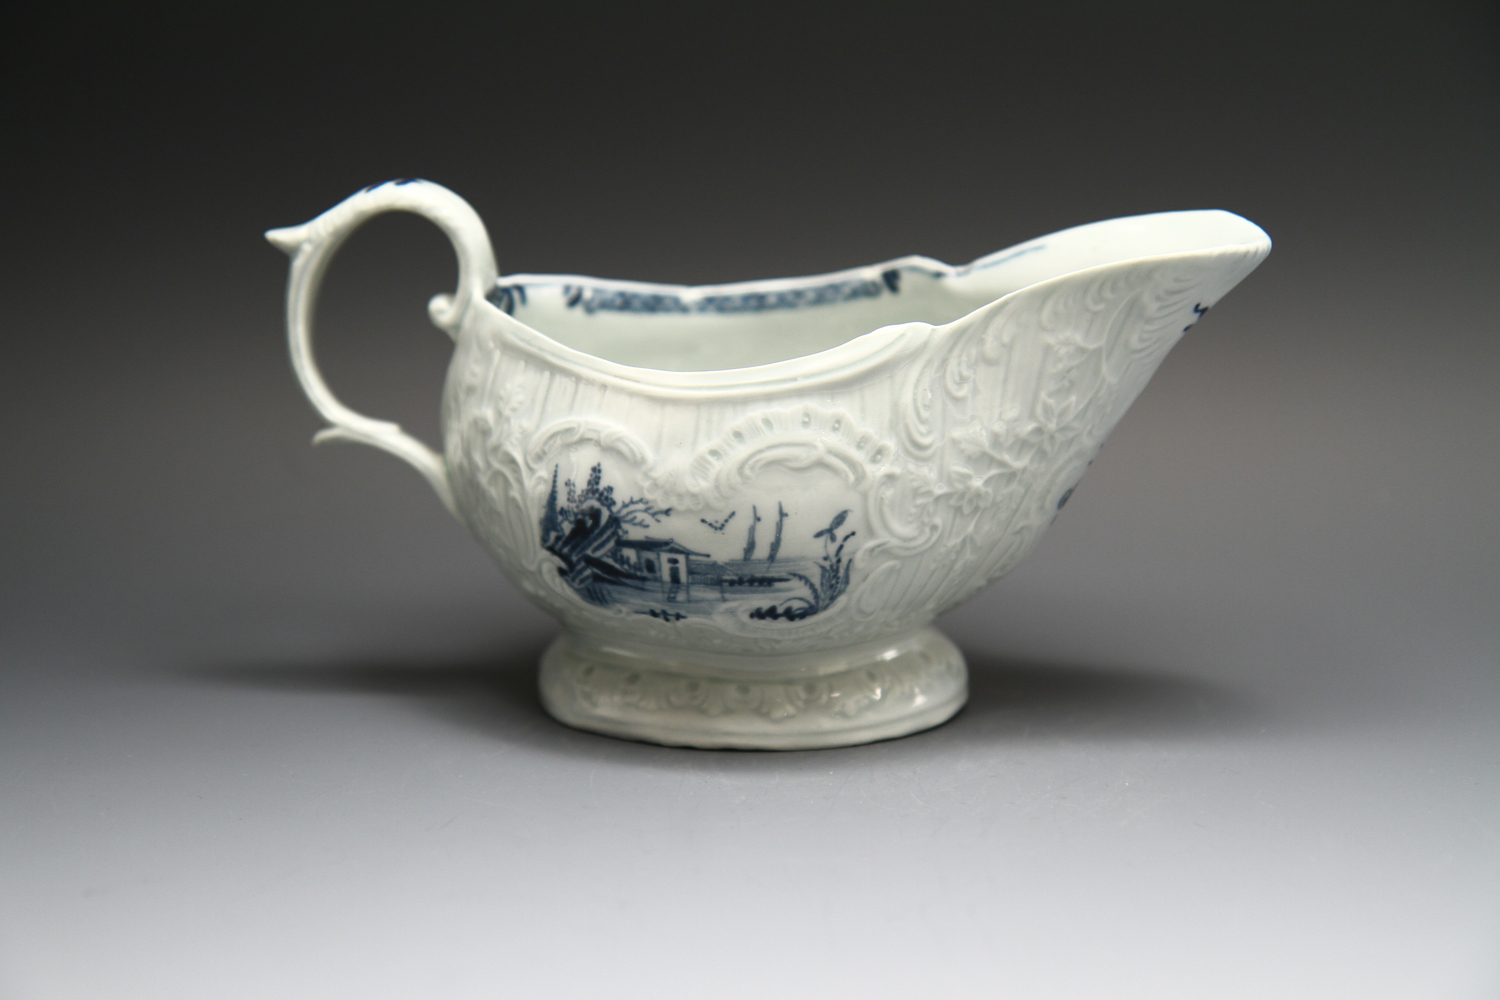 1096 - A James Pennington sauceboat c 1765-70